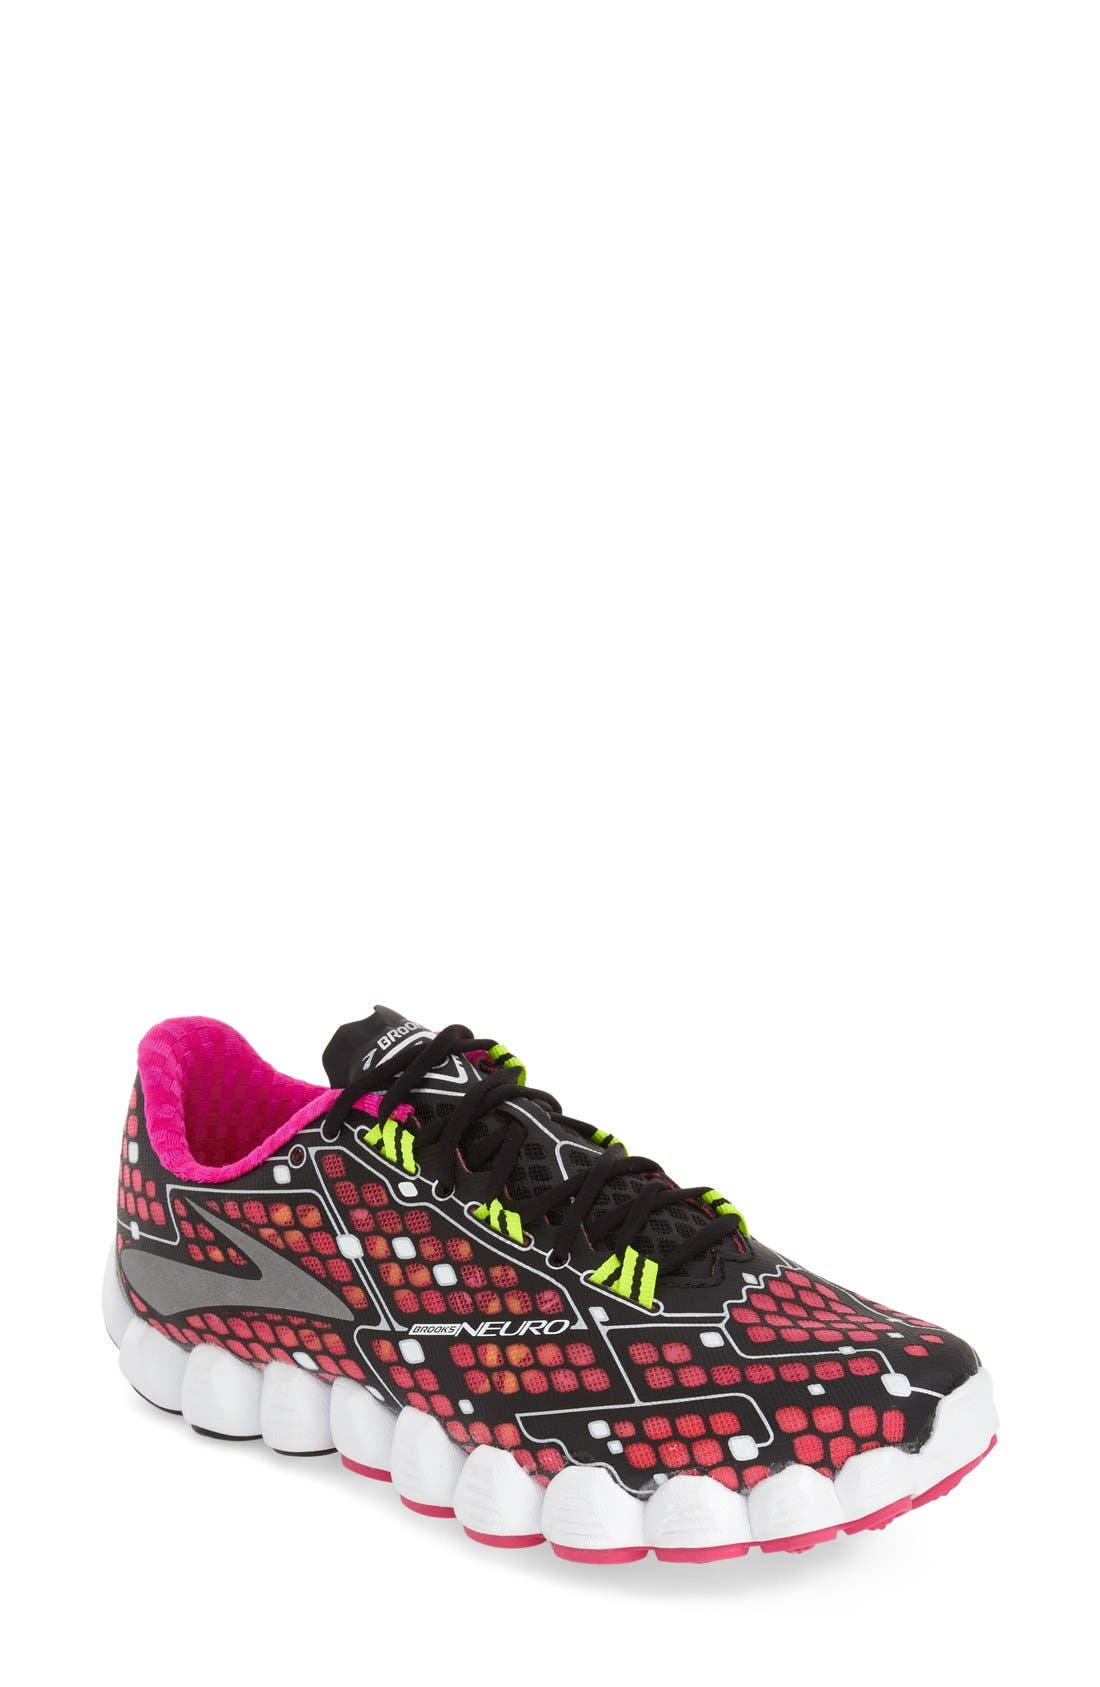 'Neuro' Running Shoe,                         Main,                         color, Pink/ Black